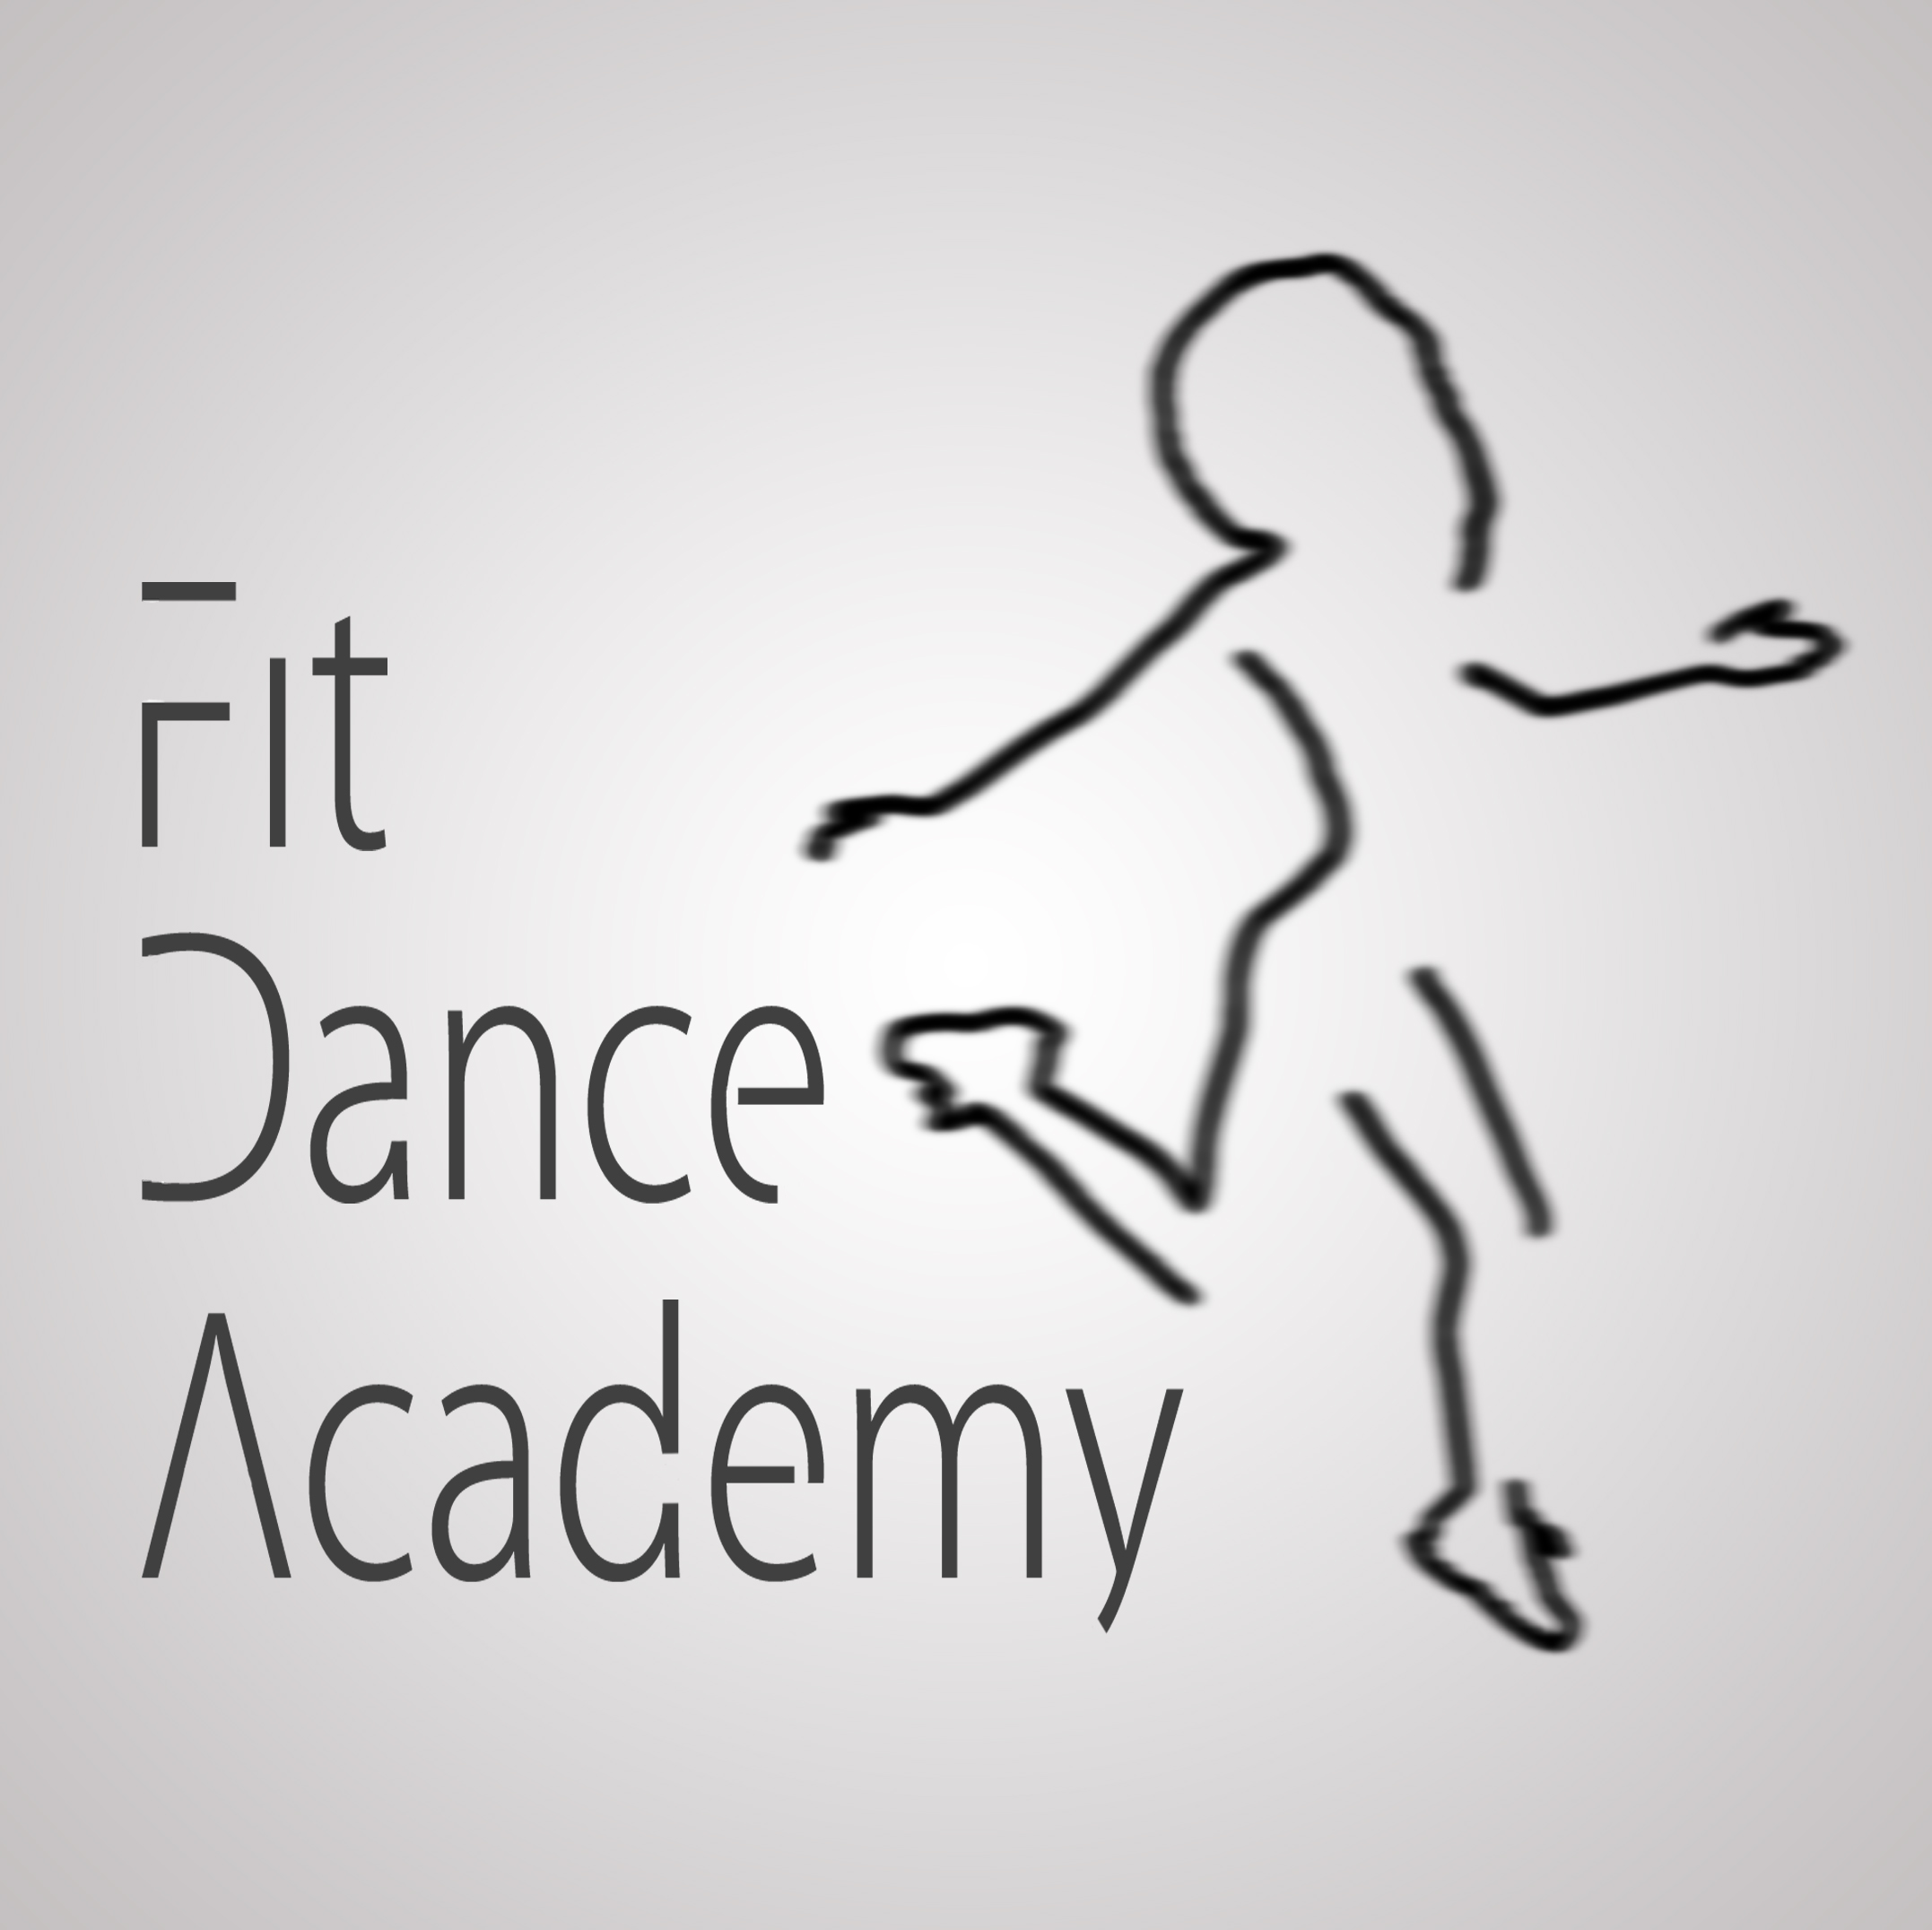 Fit Dance Academy